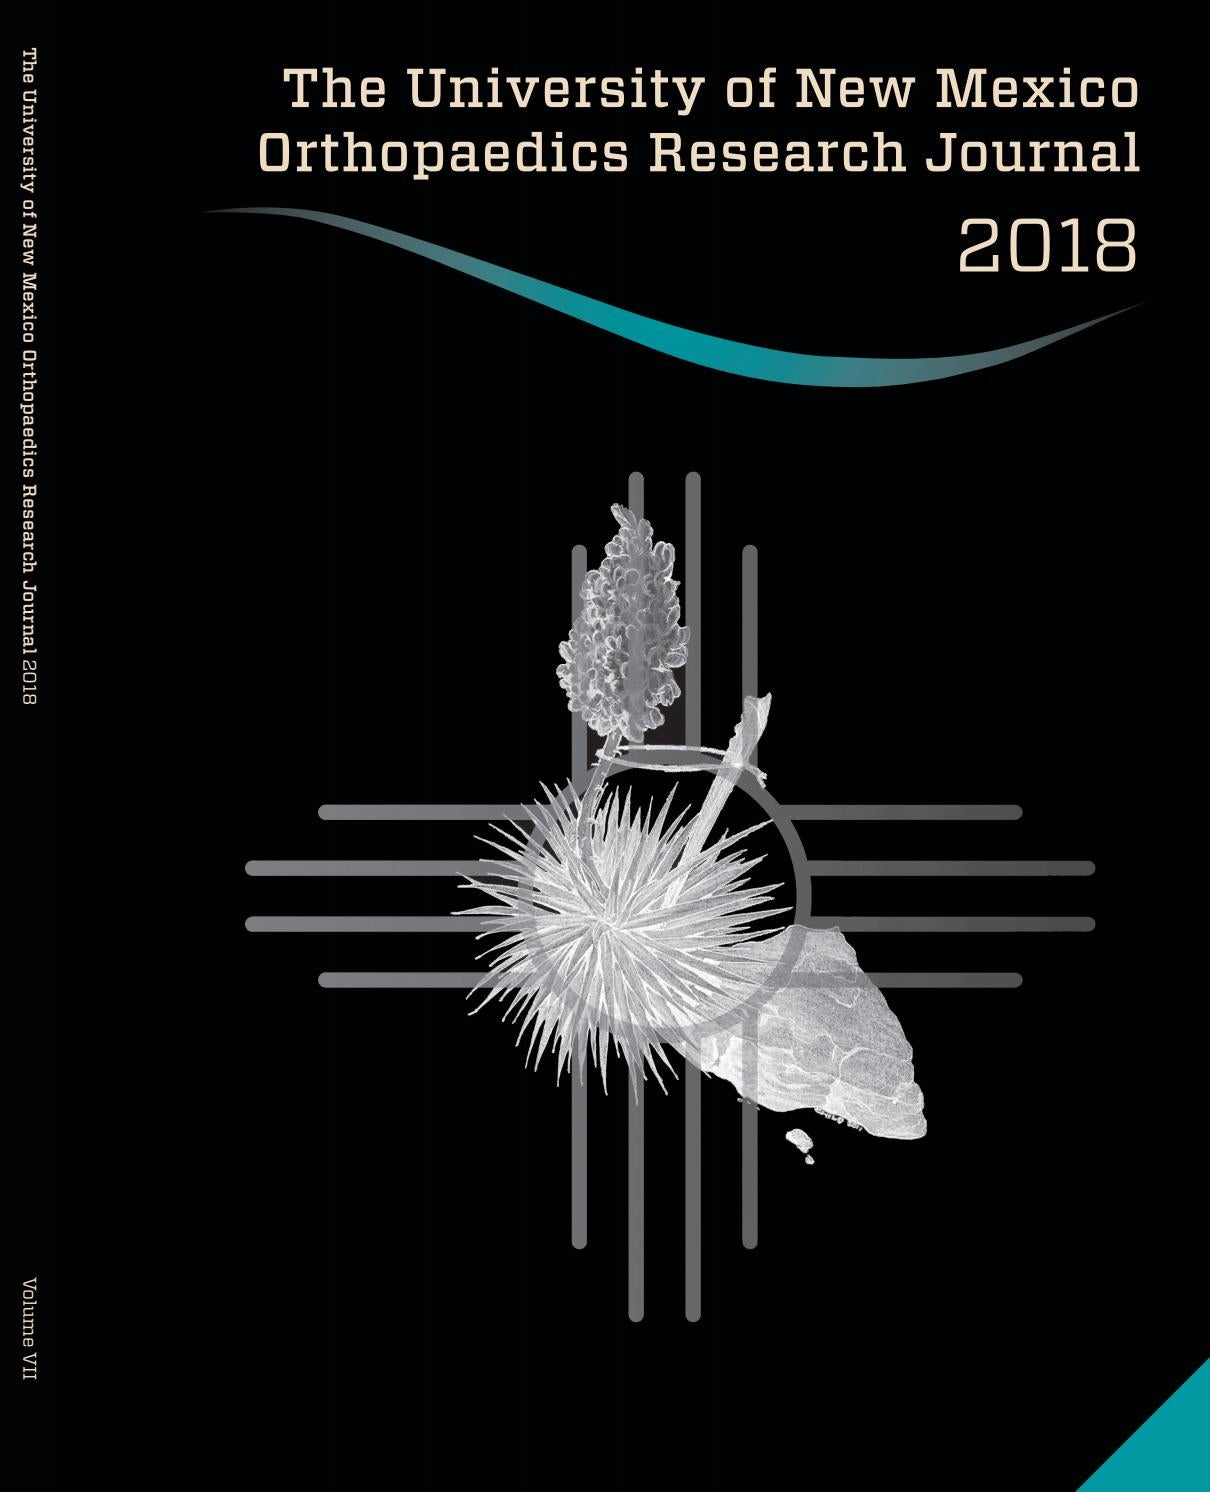 Unmorj 2018 Master File By Unm Orthopaedics Issuu Chairman Utility Chair Uc 506